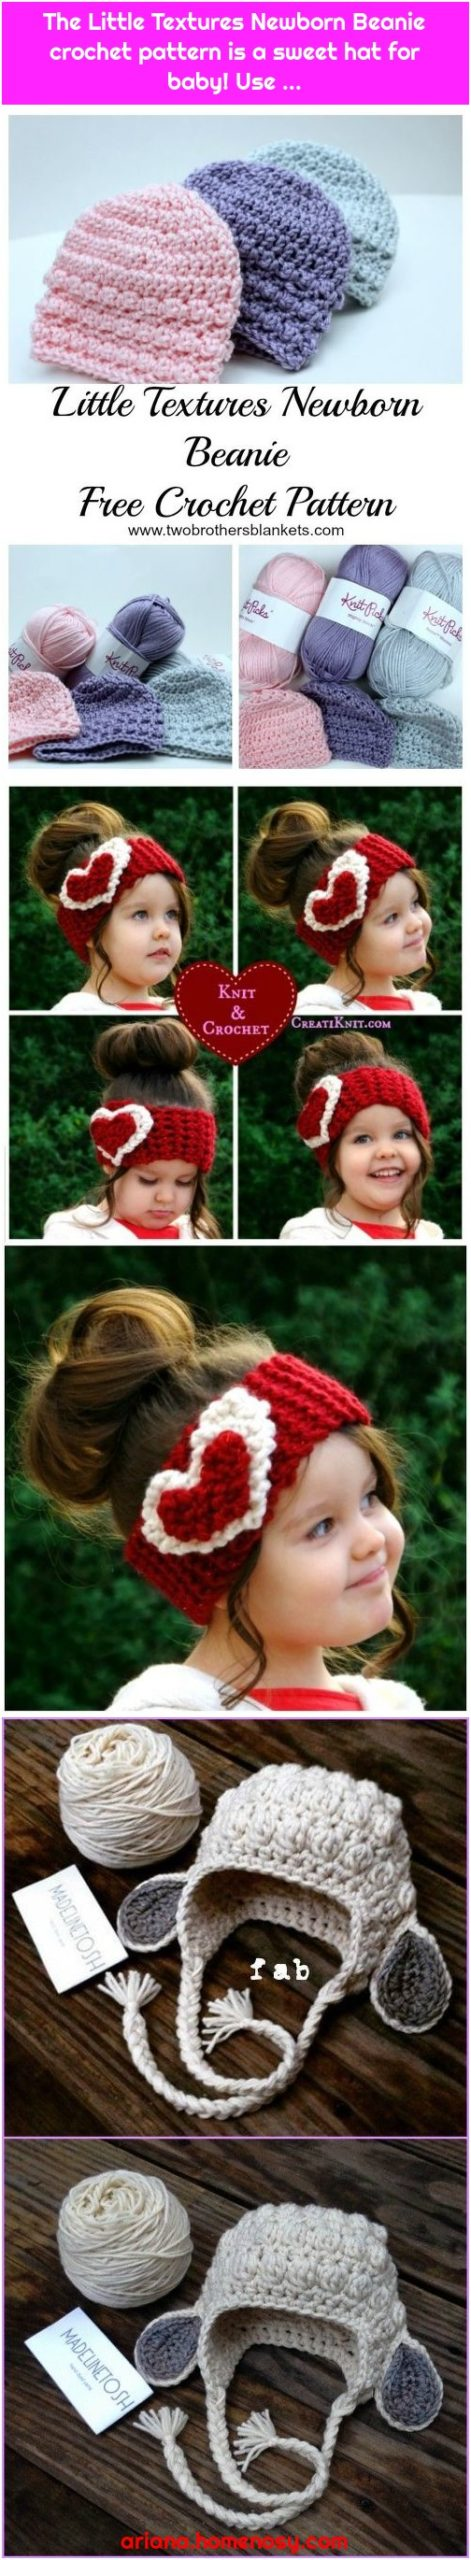 The Little Textures Newborn Beanie crochet pattern is a sweet hat for baby! Use ...